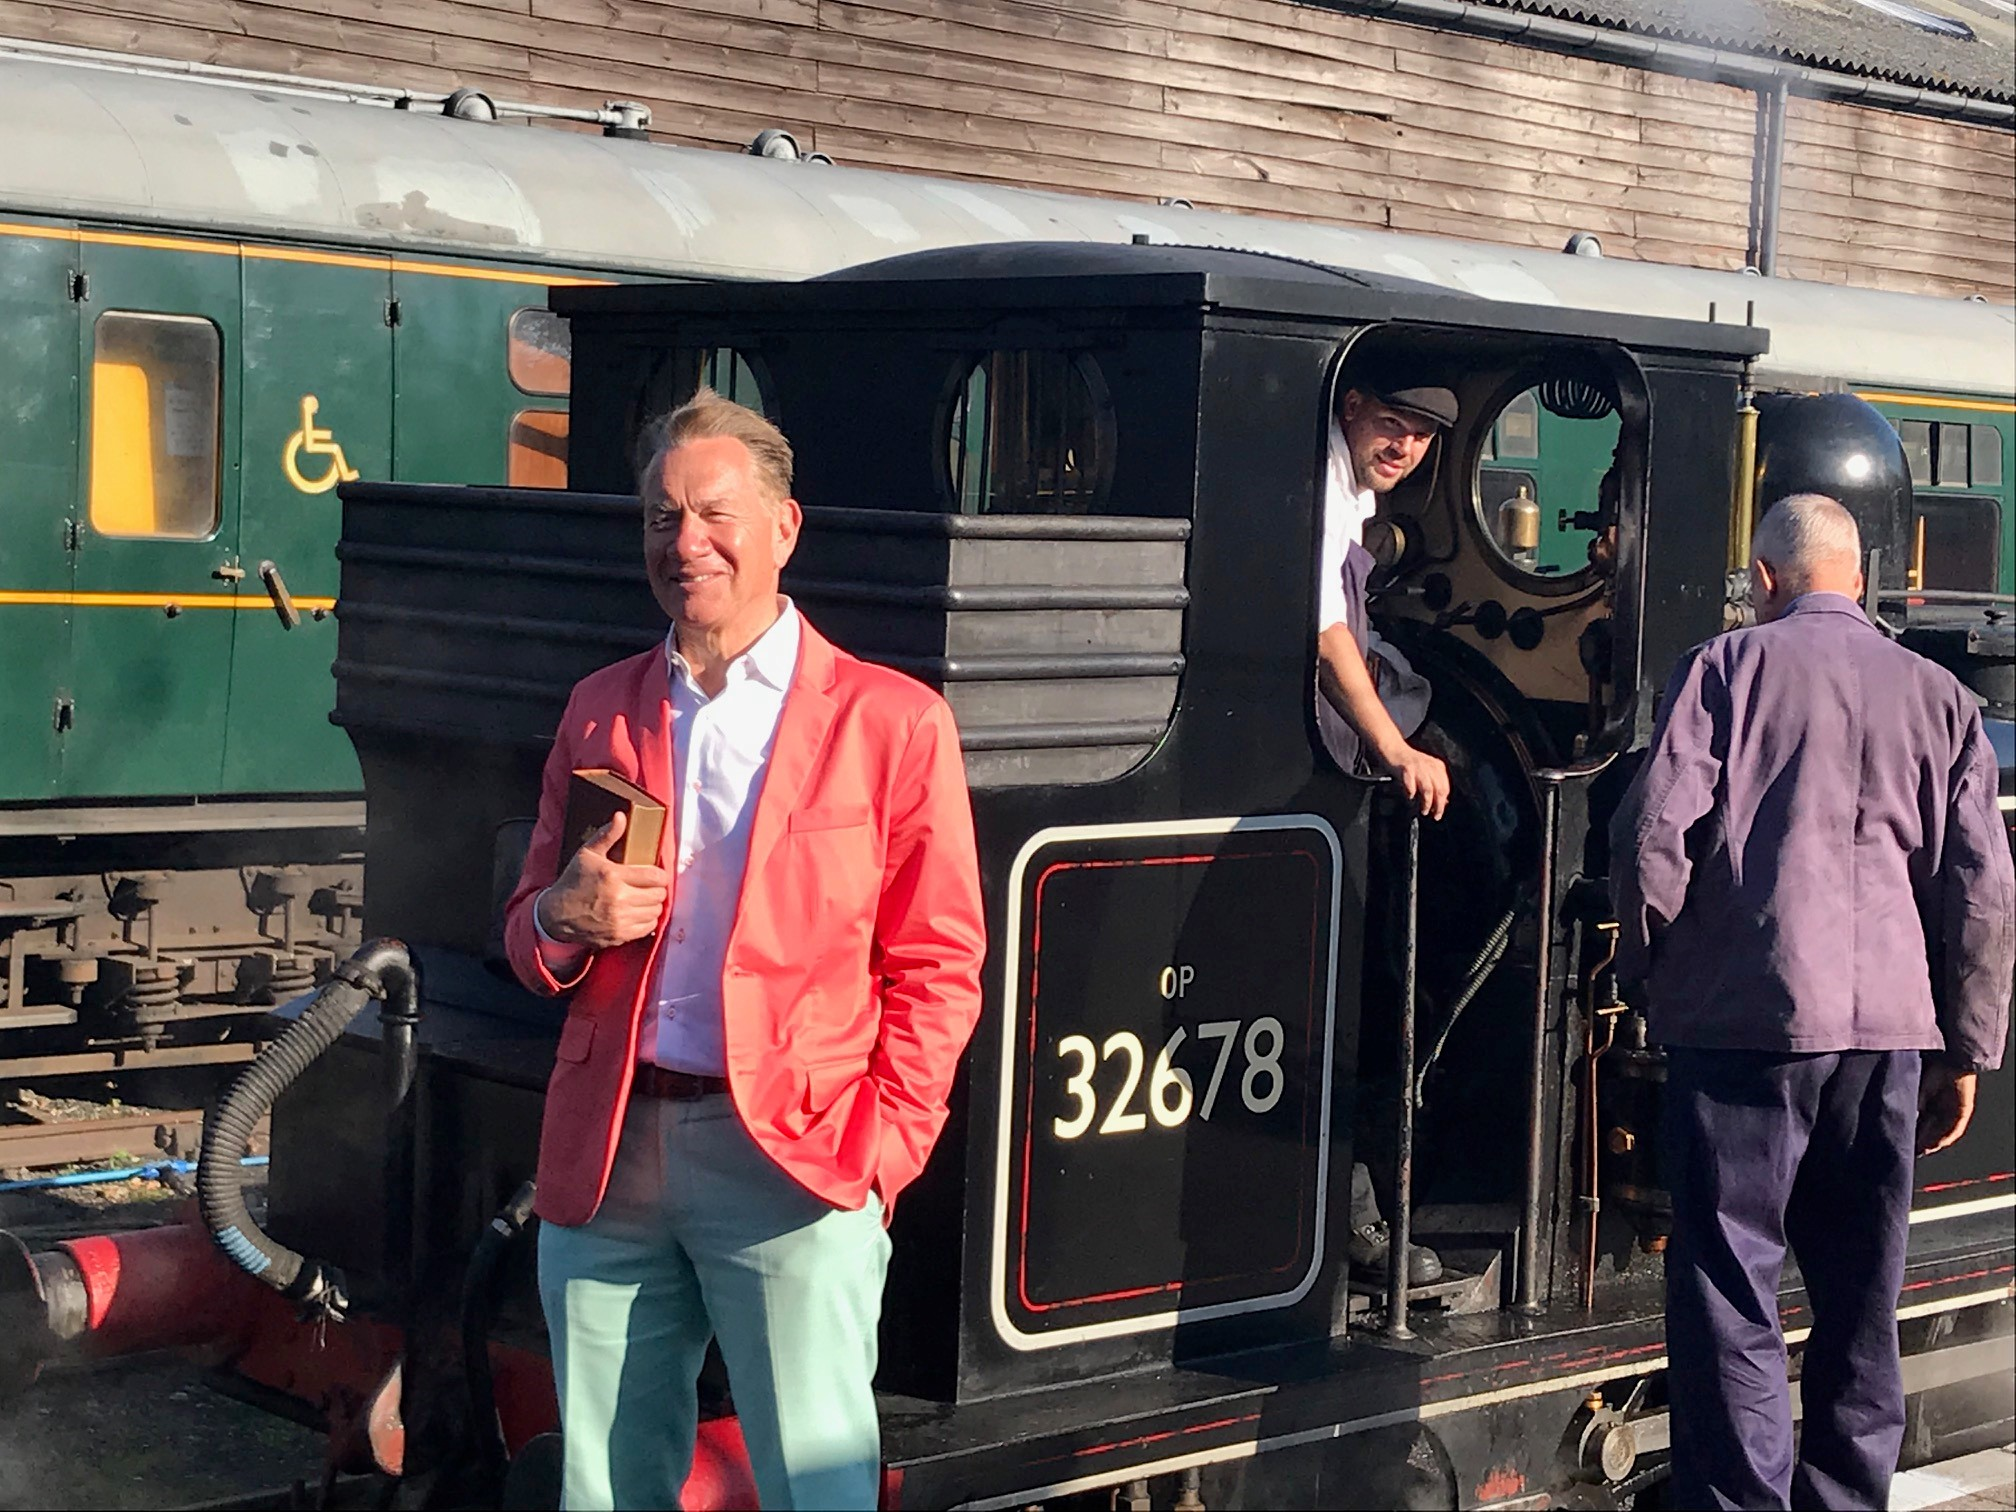 Michael Portillo with 32678 at Tenterden Town Station - 10-10-18 Photograph © Andre Freeman